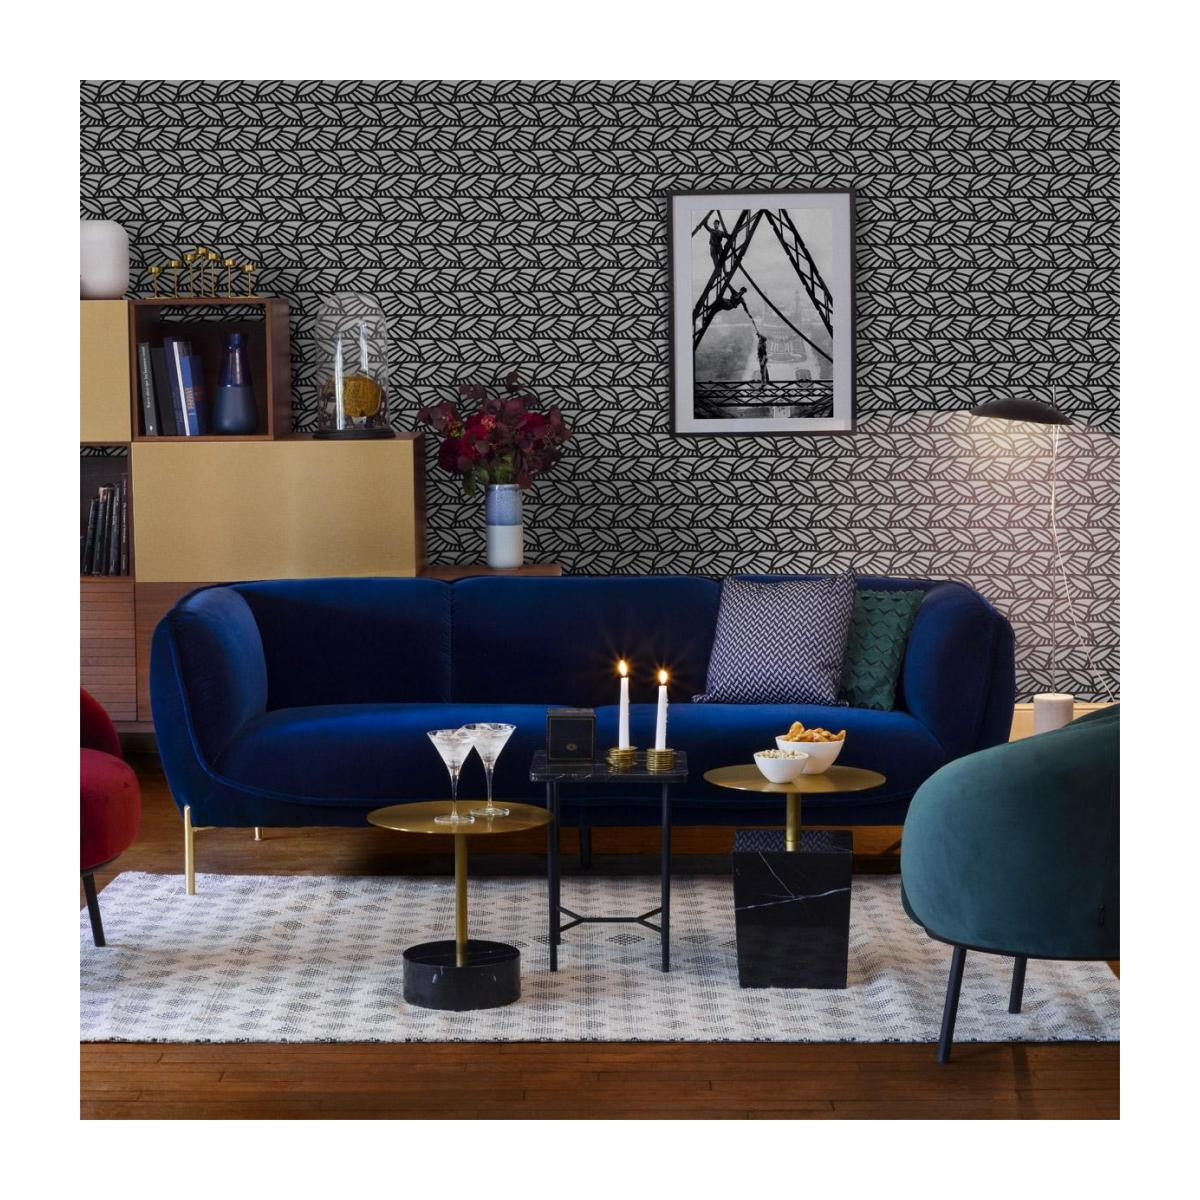 octave rouleau de papier peint design by floriane. Black Bedroom Furniture Sets. Home Design Ideas